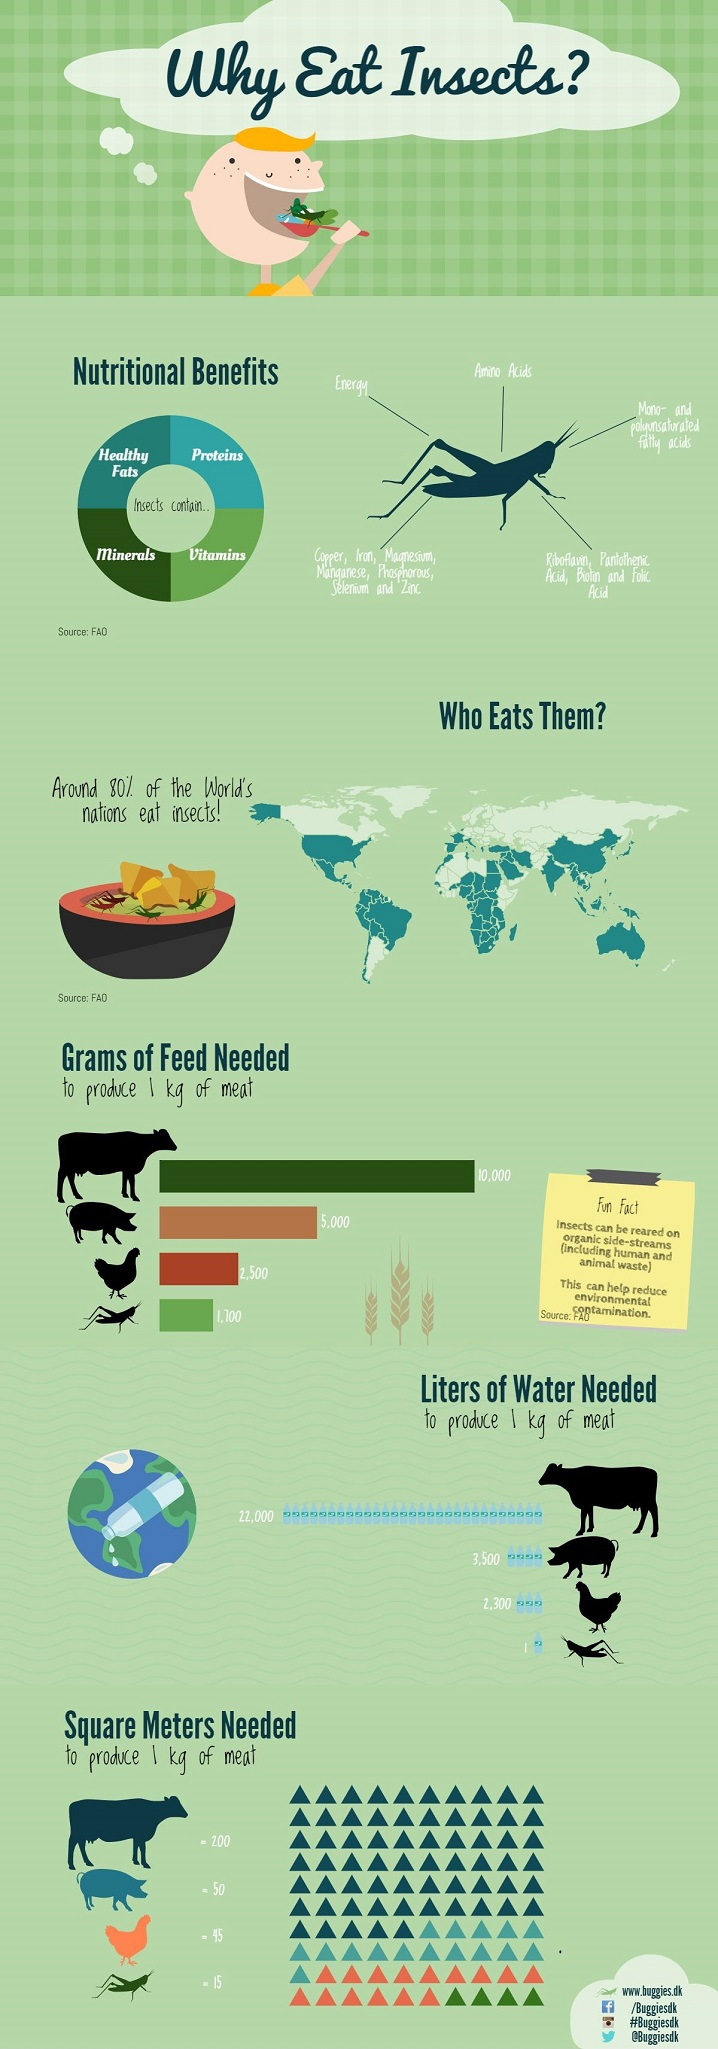 Buggies Infographic - Why eat insects - Small